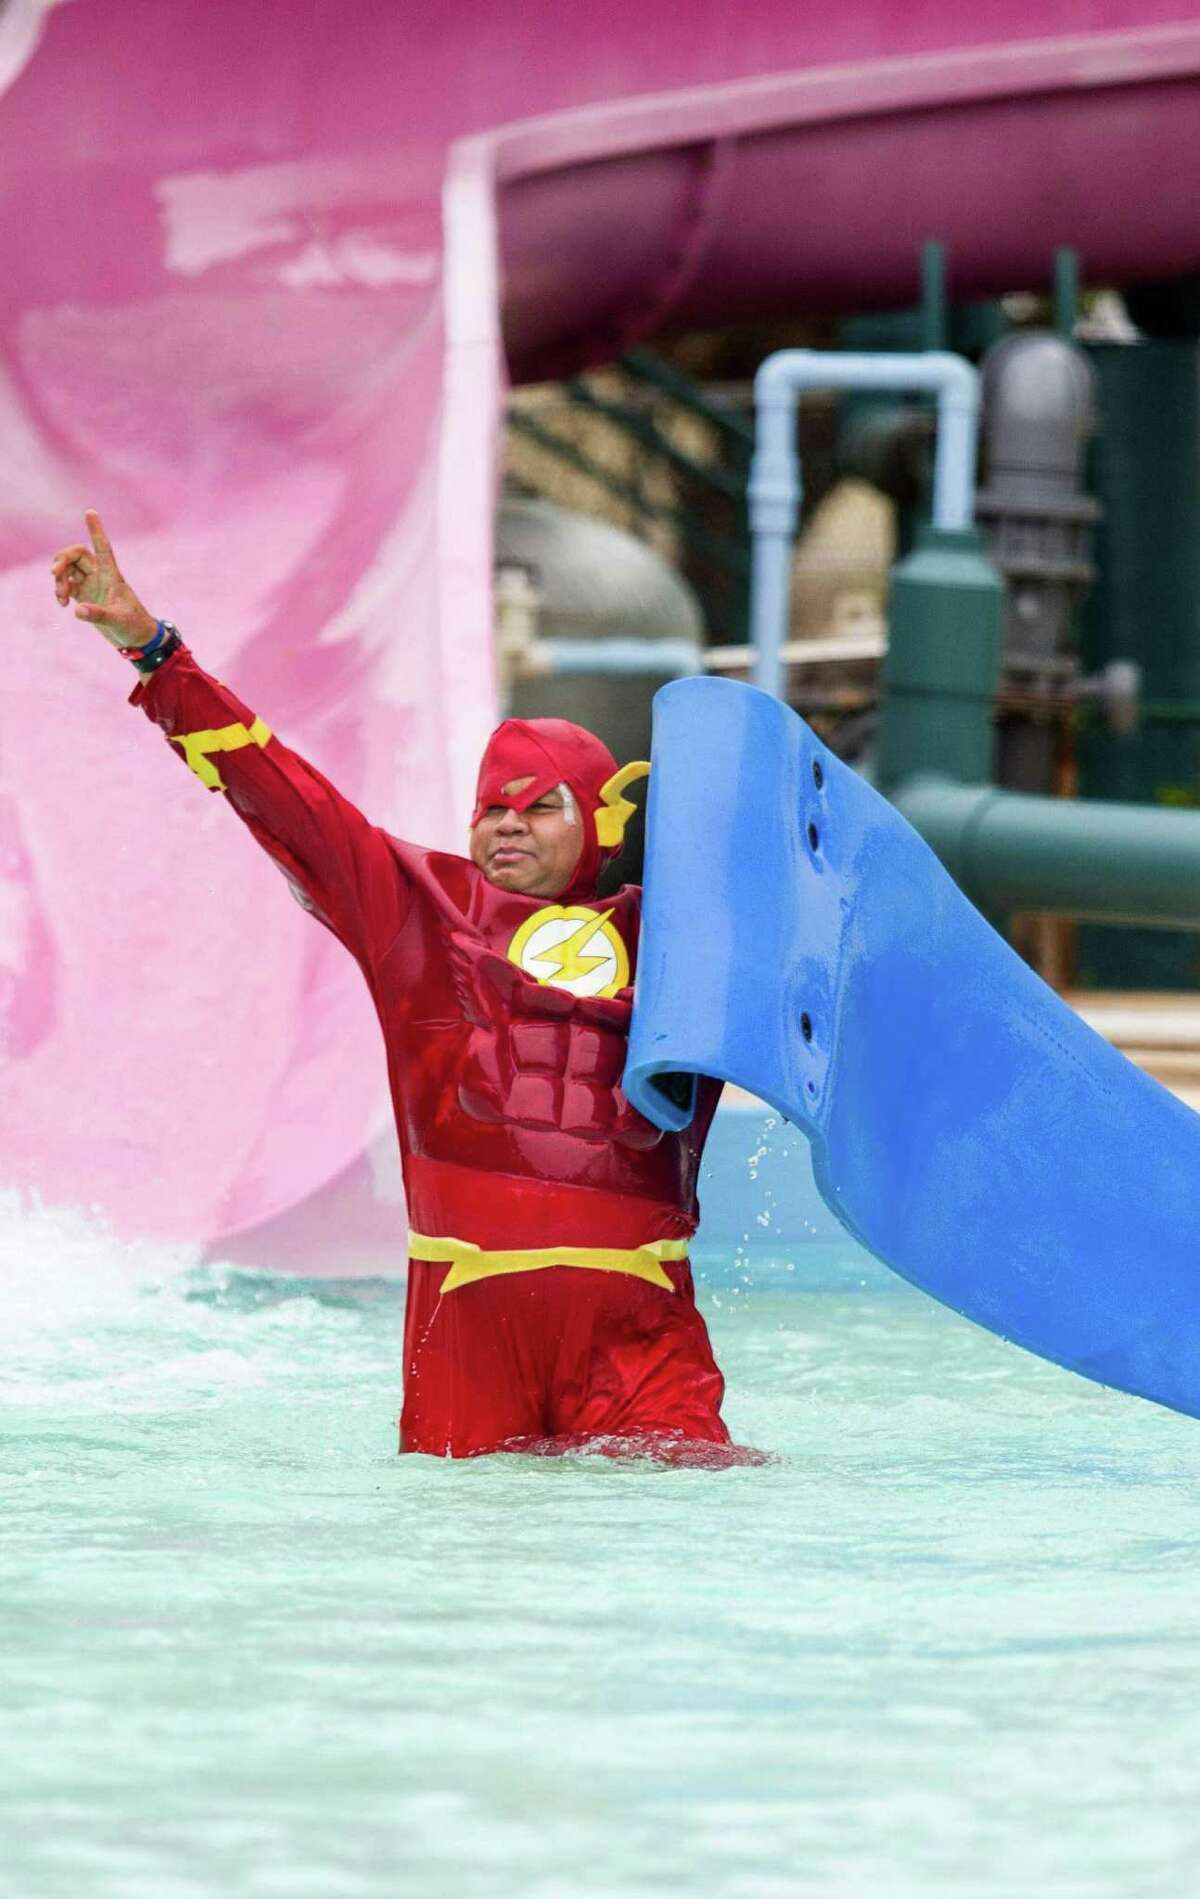 Dean Babcock raises his hand in the air after going down a slide during the Special Olympics Texas Polar Plunge at Splashtown in San Antonio, Texas on December 10, 2016. Ray Whitehouse / for the San Antonio Express-News